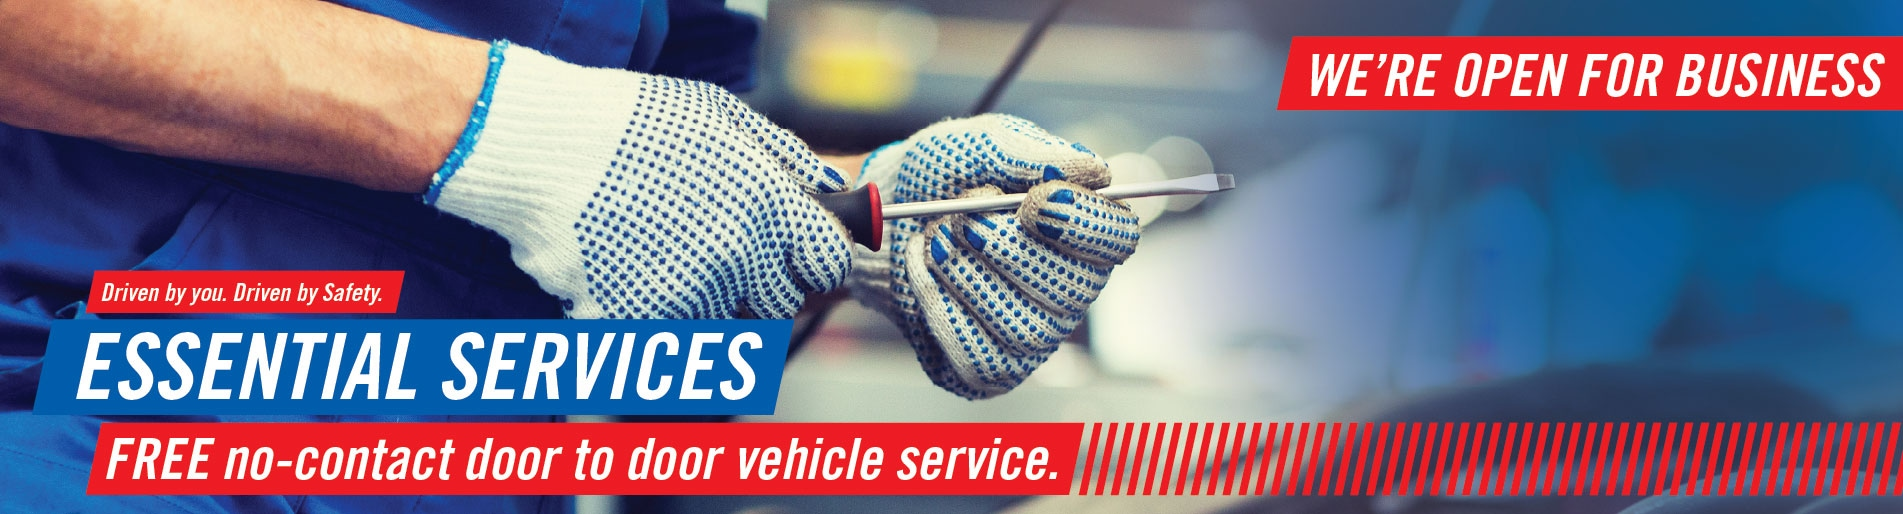 We are Open for Business! Free no-contact door-to-door vehicle service.